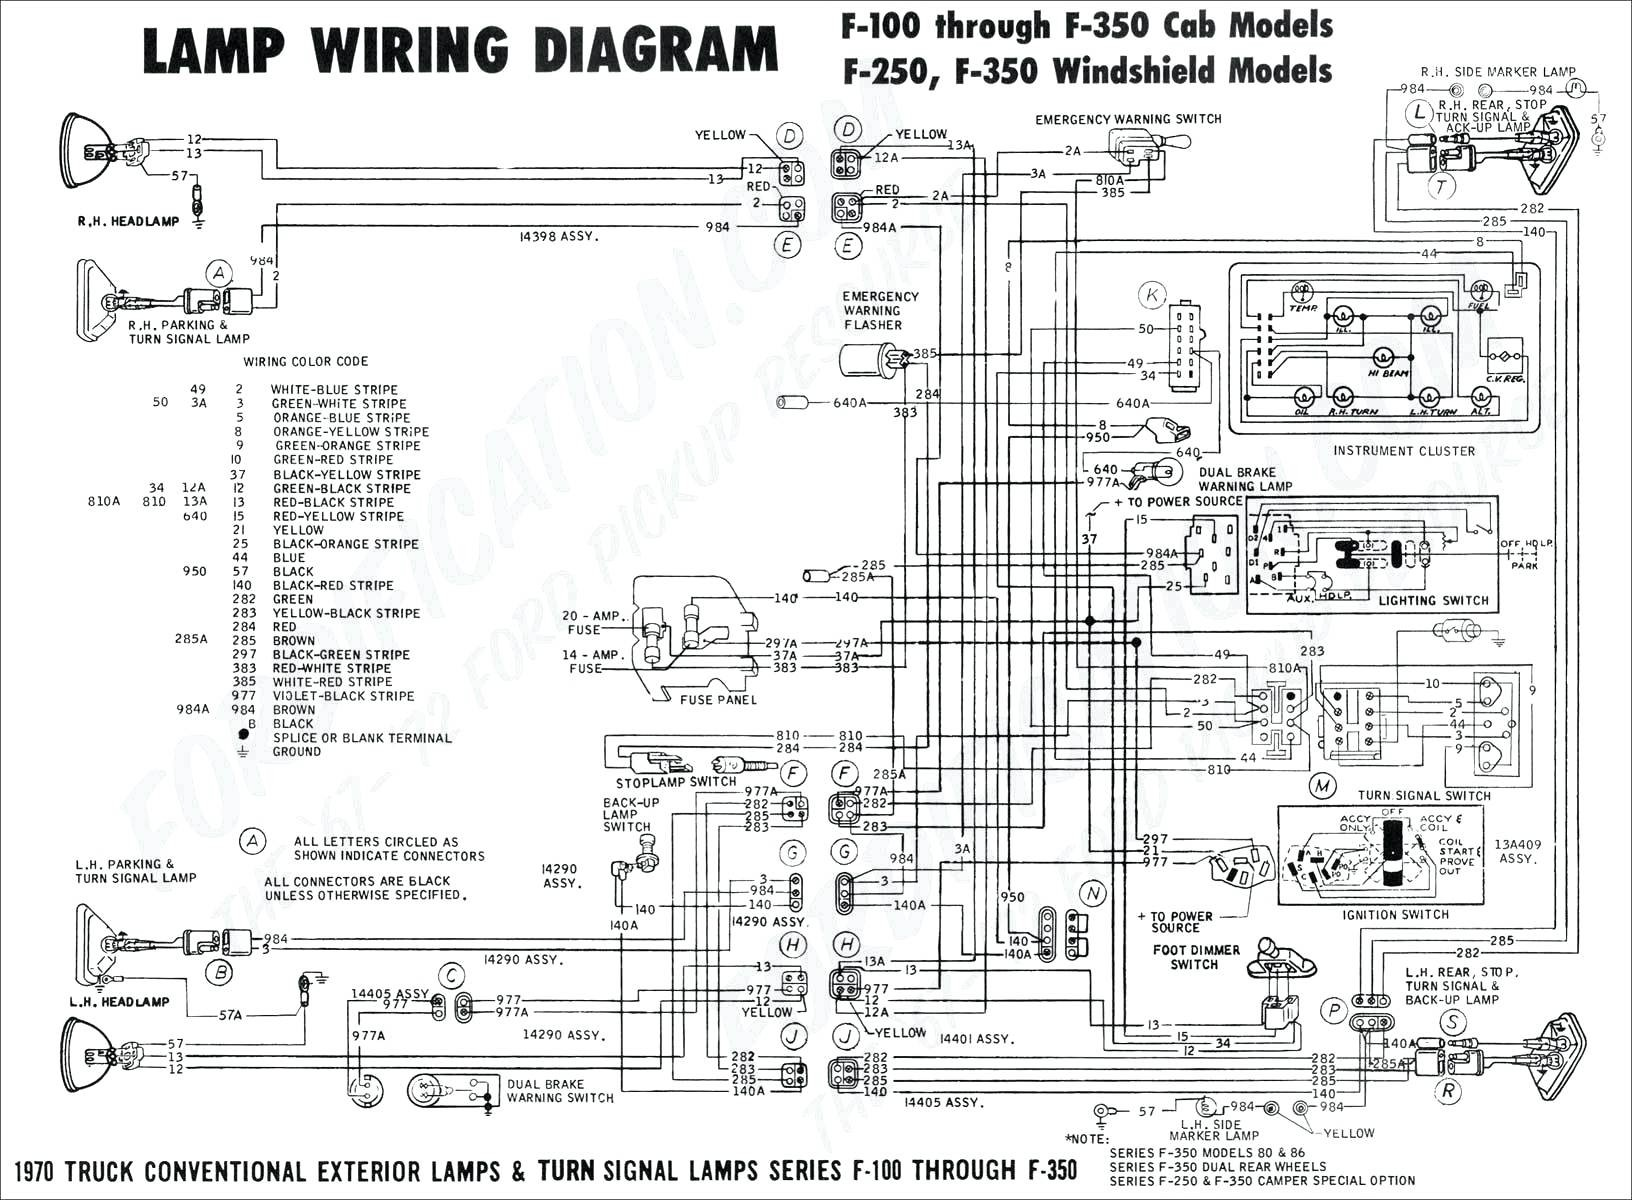 99 Kawasaki Vulcan Wiring Diagrams Trusted Diagram 2008 900 Zxi Ventilation Data U2022 1986 Electric Wire Color 750